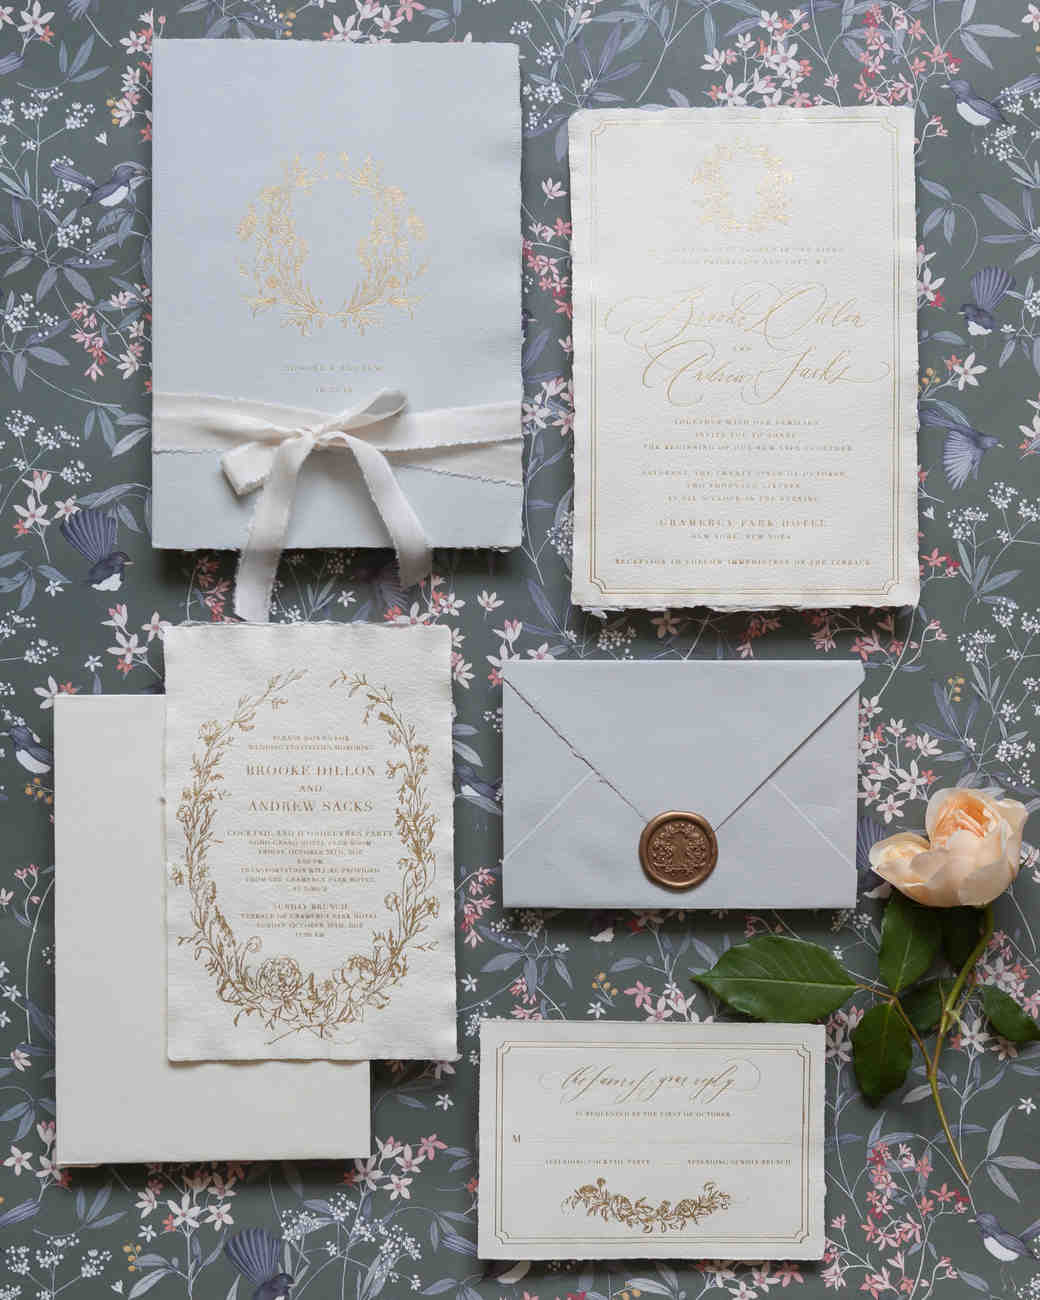 Cost Of Mailing Wedding Invitations: The Best Ways To Customize Your Wedding Invitations